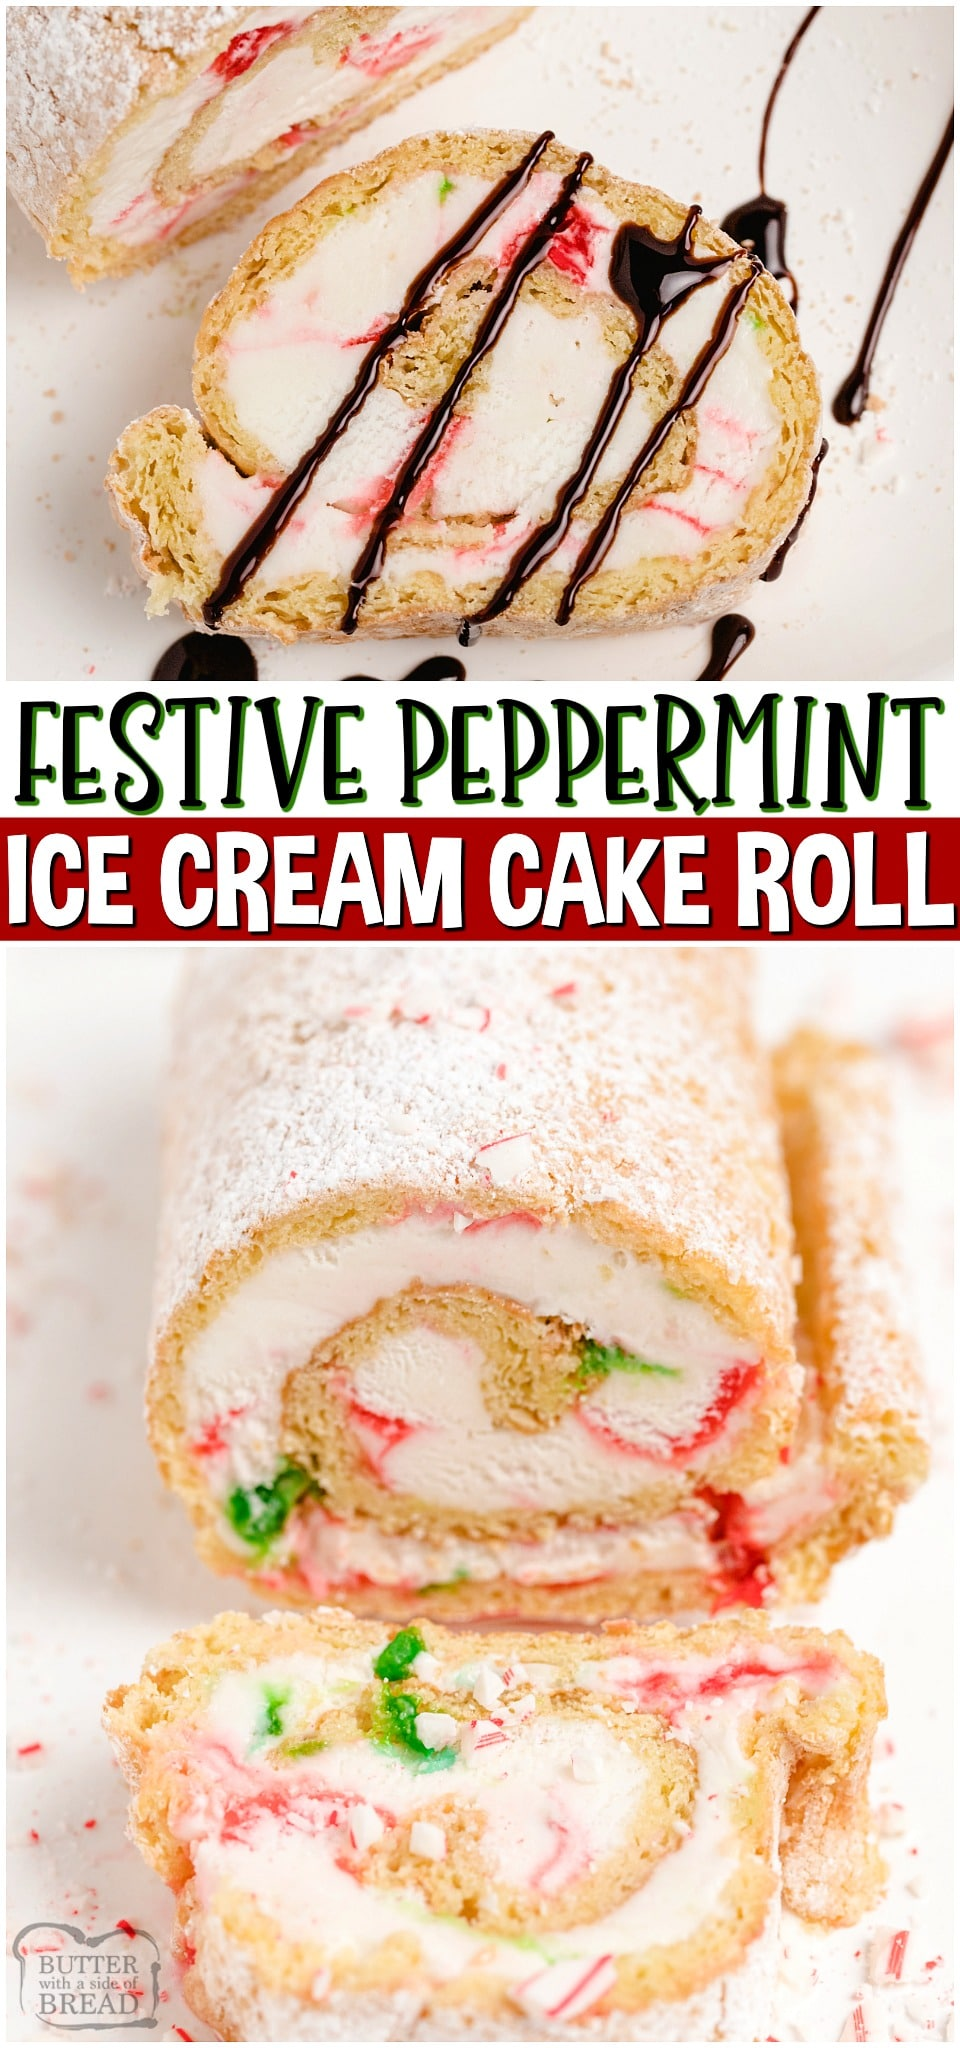 Holiday Peppermint Ice Cream Cake Roll is festive, show stopping dessert that's perfect for your Christmas table! Cake Roll recipe made with peppermint Ice Cream rolled in sweet, soft vanilla cake, sliced & topped with chocolate drizzle.